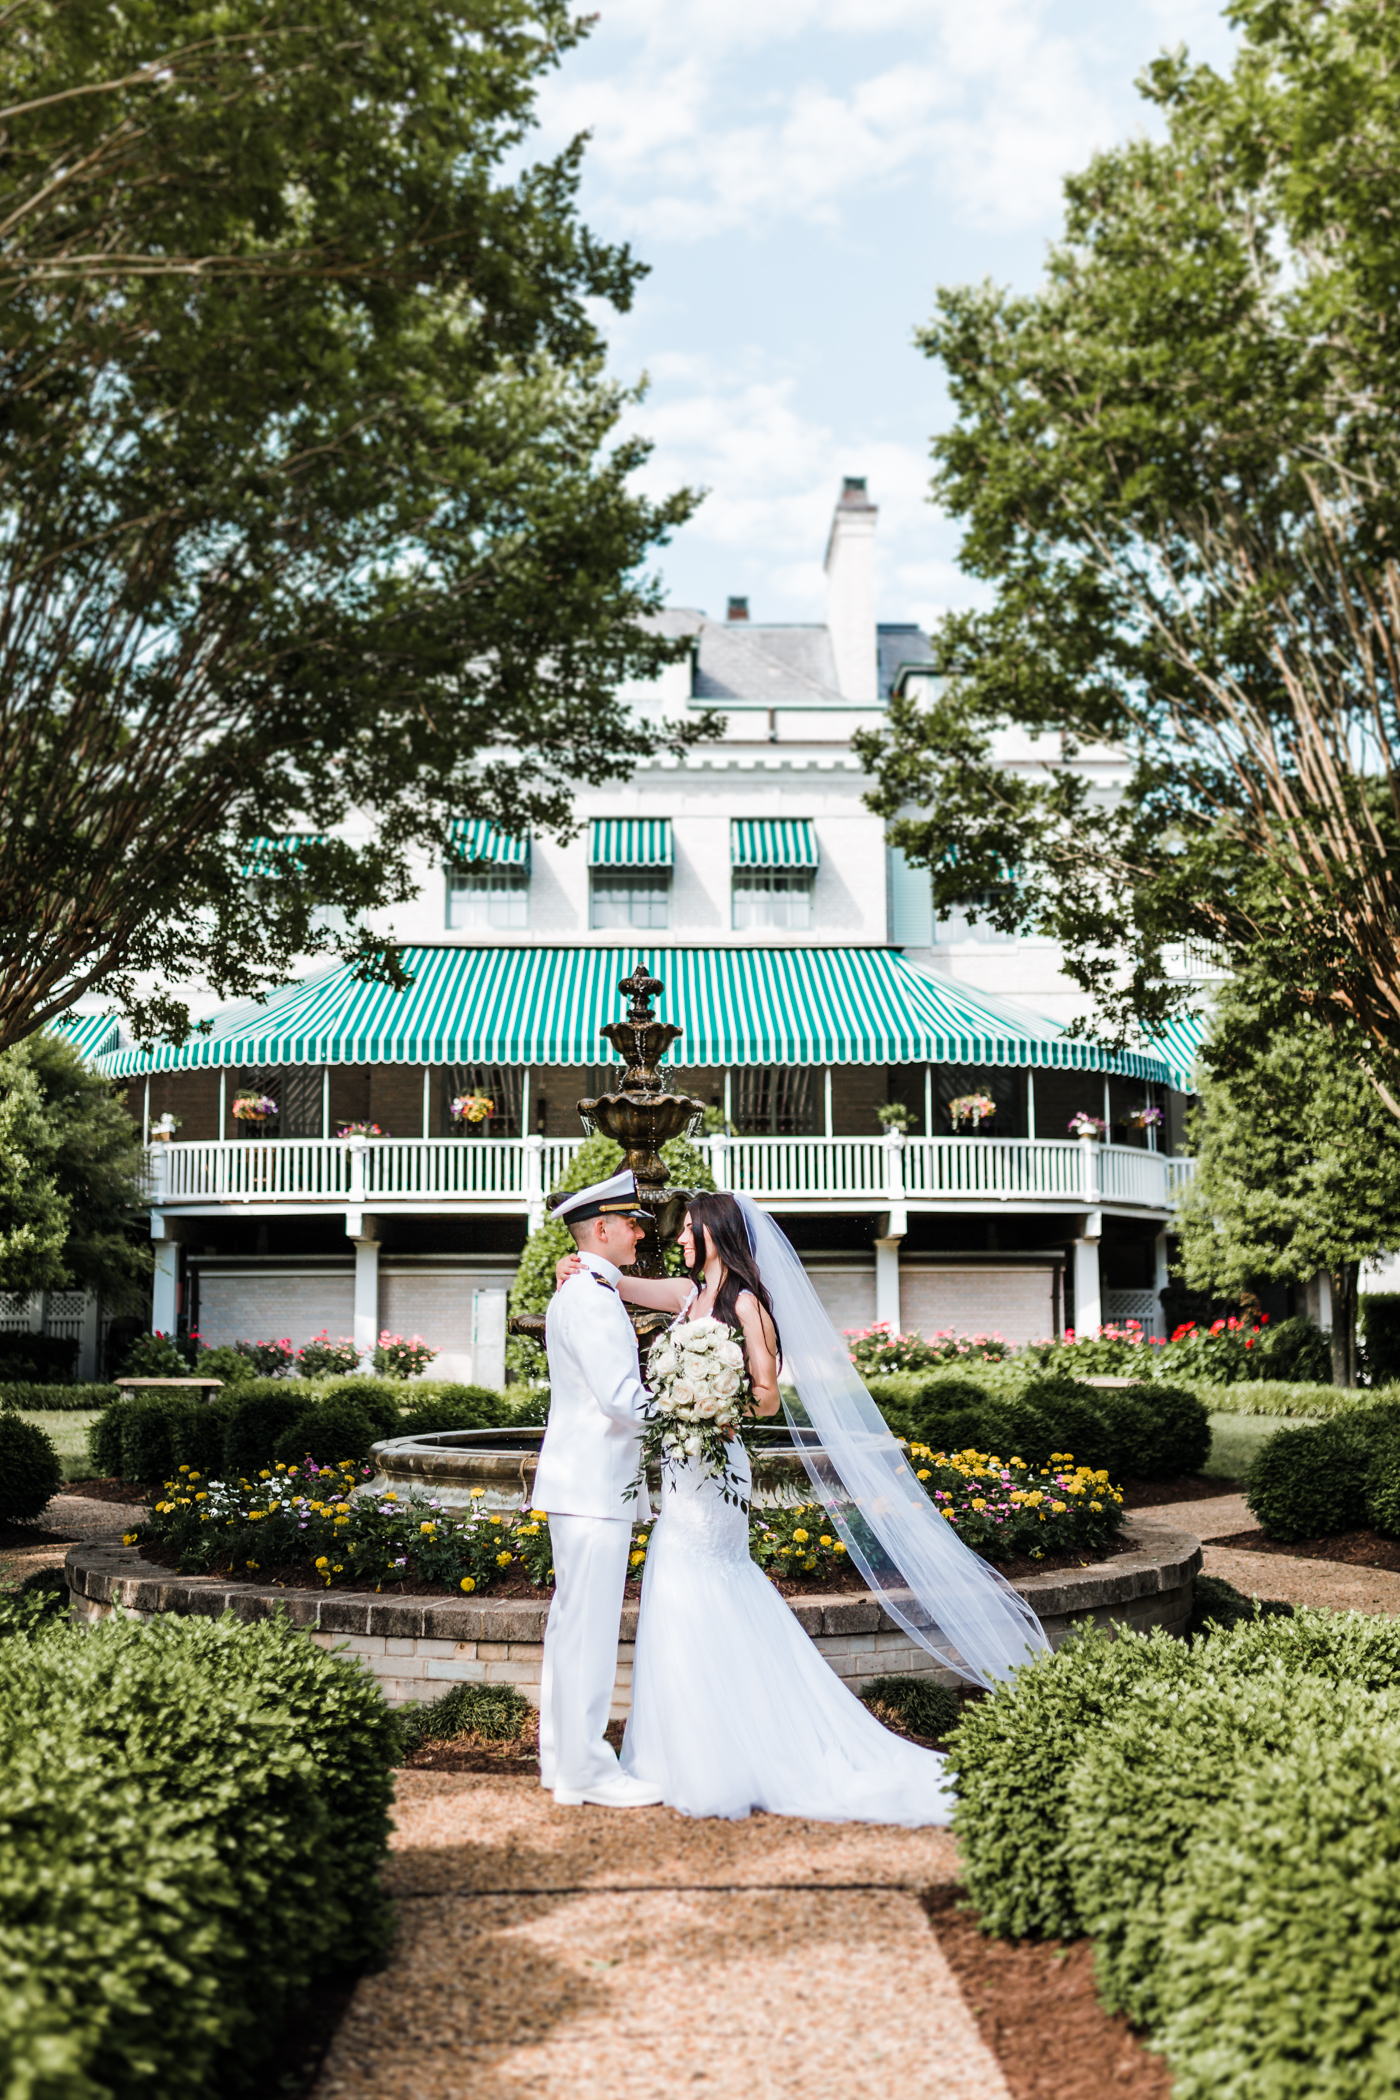 bride and groom in superintendent's garden at naval academy in annapolis, md